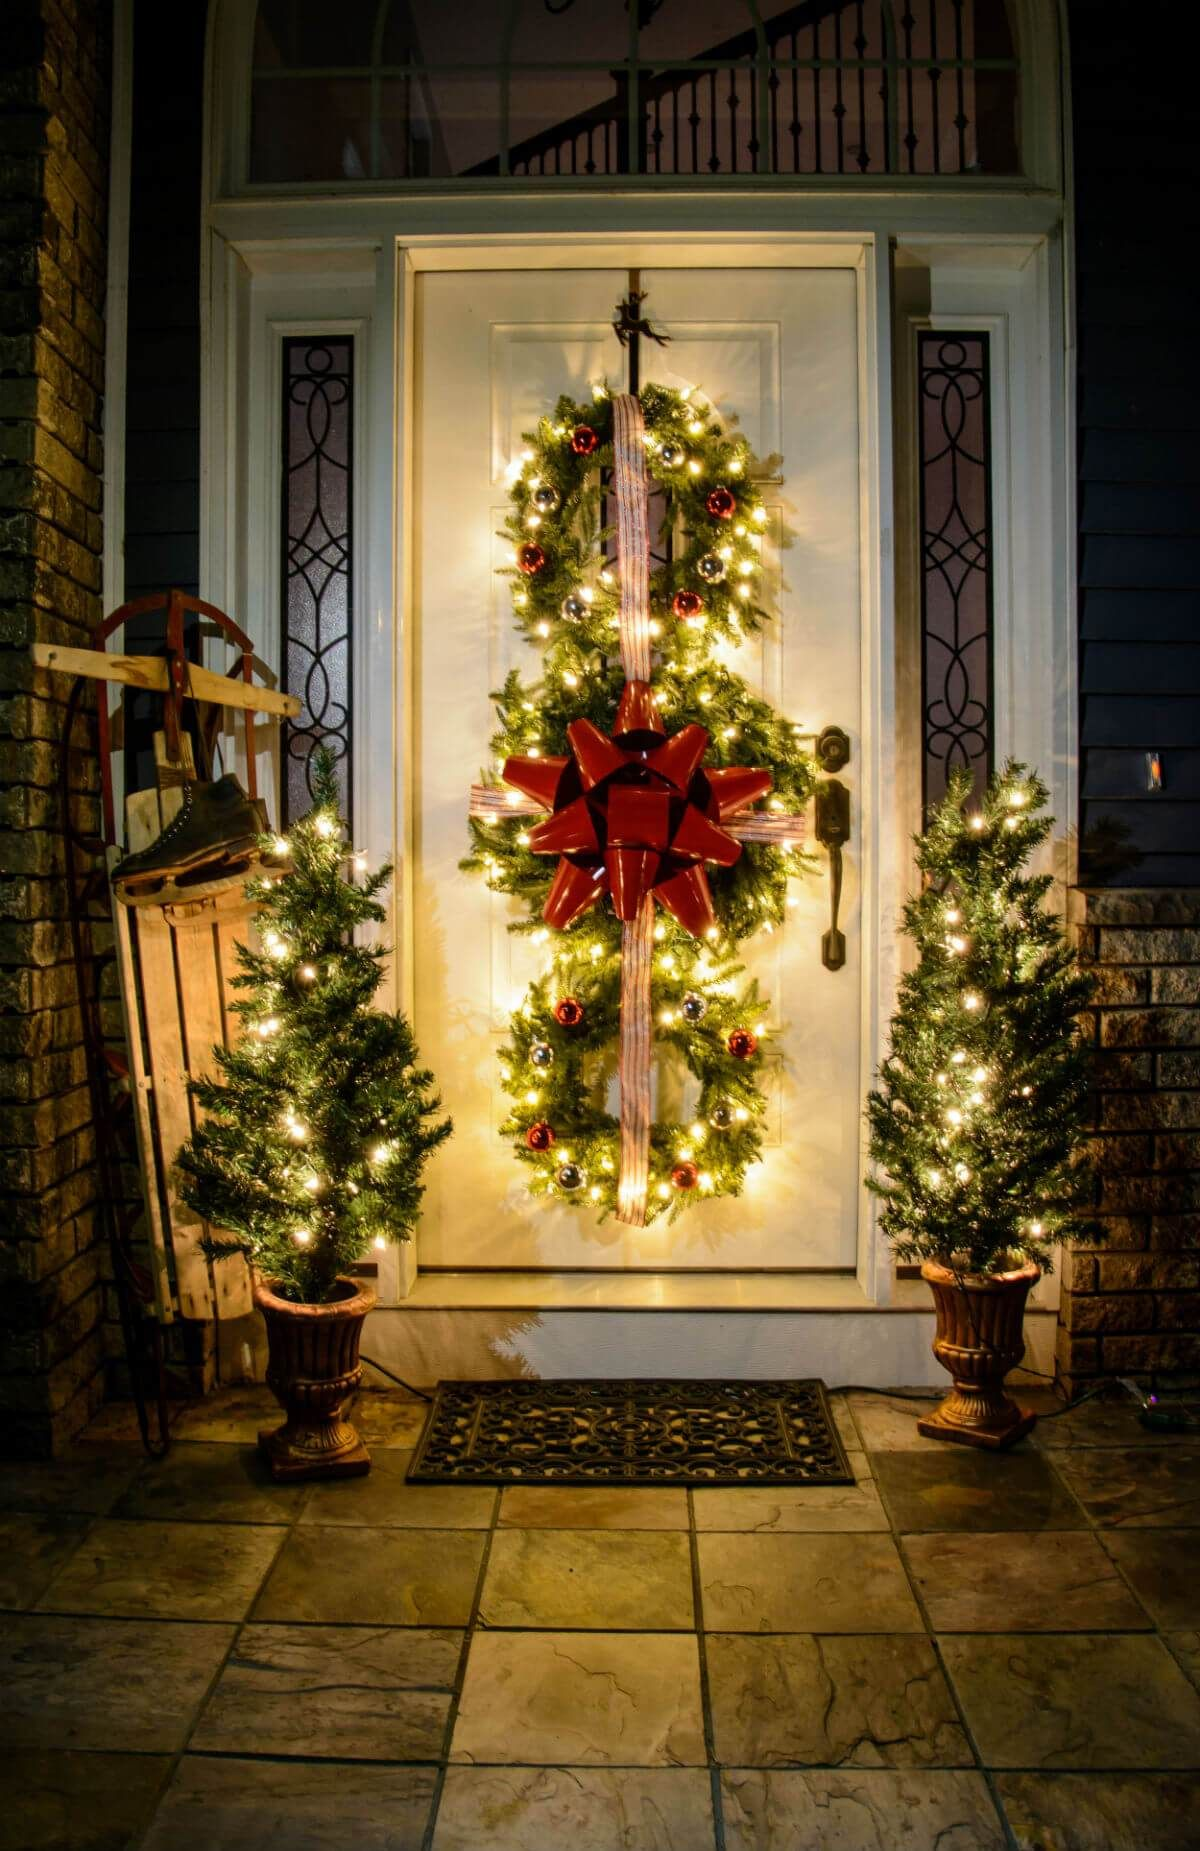 Outdoor Christmas Decorations Ideas 2019.20 Best Christmas Door And Window Lighting Decorating Ideas